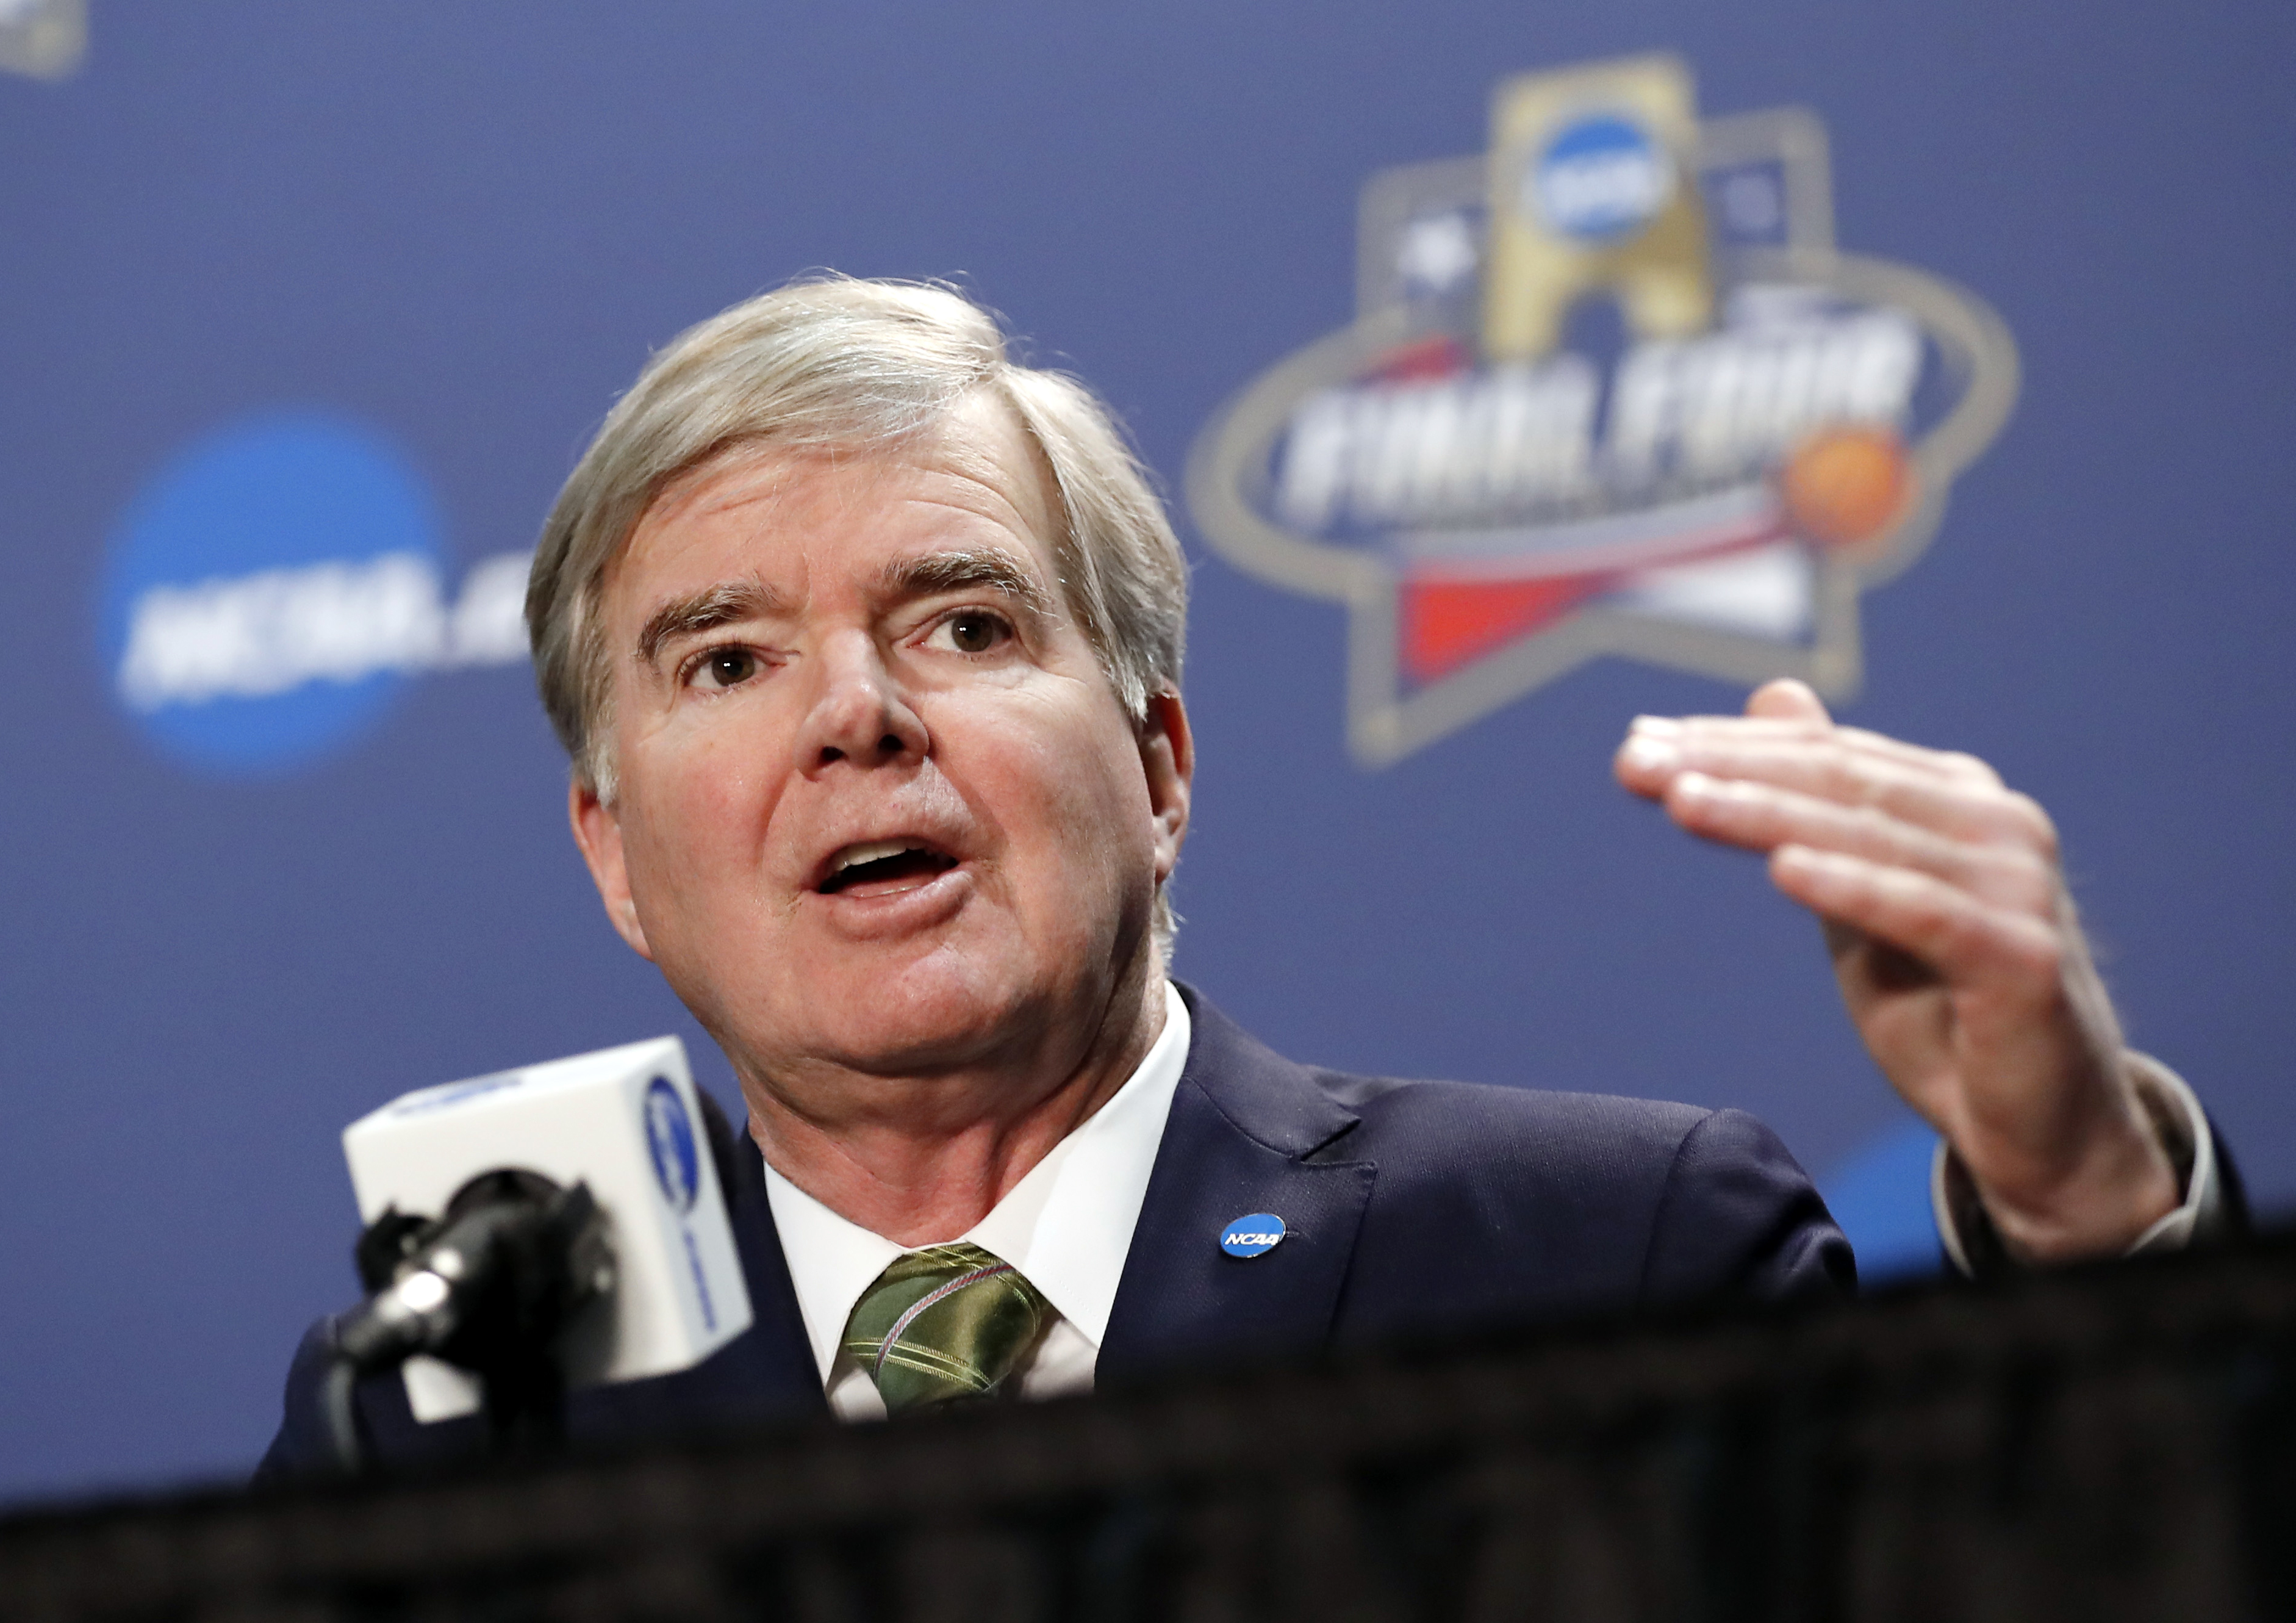 FILE - In this March 31, 2016, file photo, NCAA President Mark Emmert answers questions during a news conference at the men's NCAA Final Four of the NCAA college basketball tournament in Houston. Basketball-crazed North Carolina has lost its next chance t